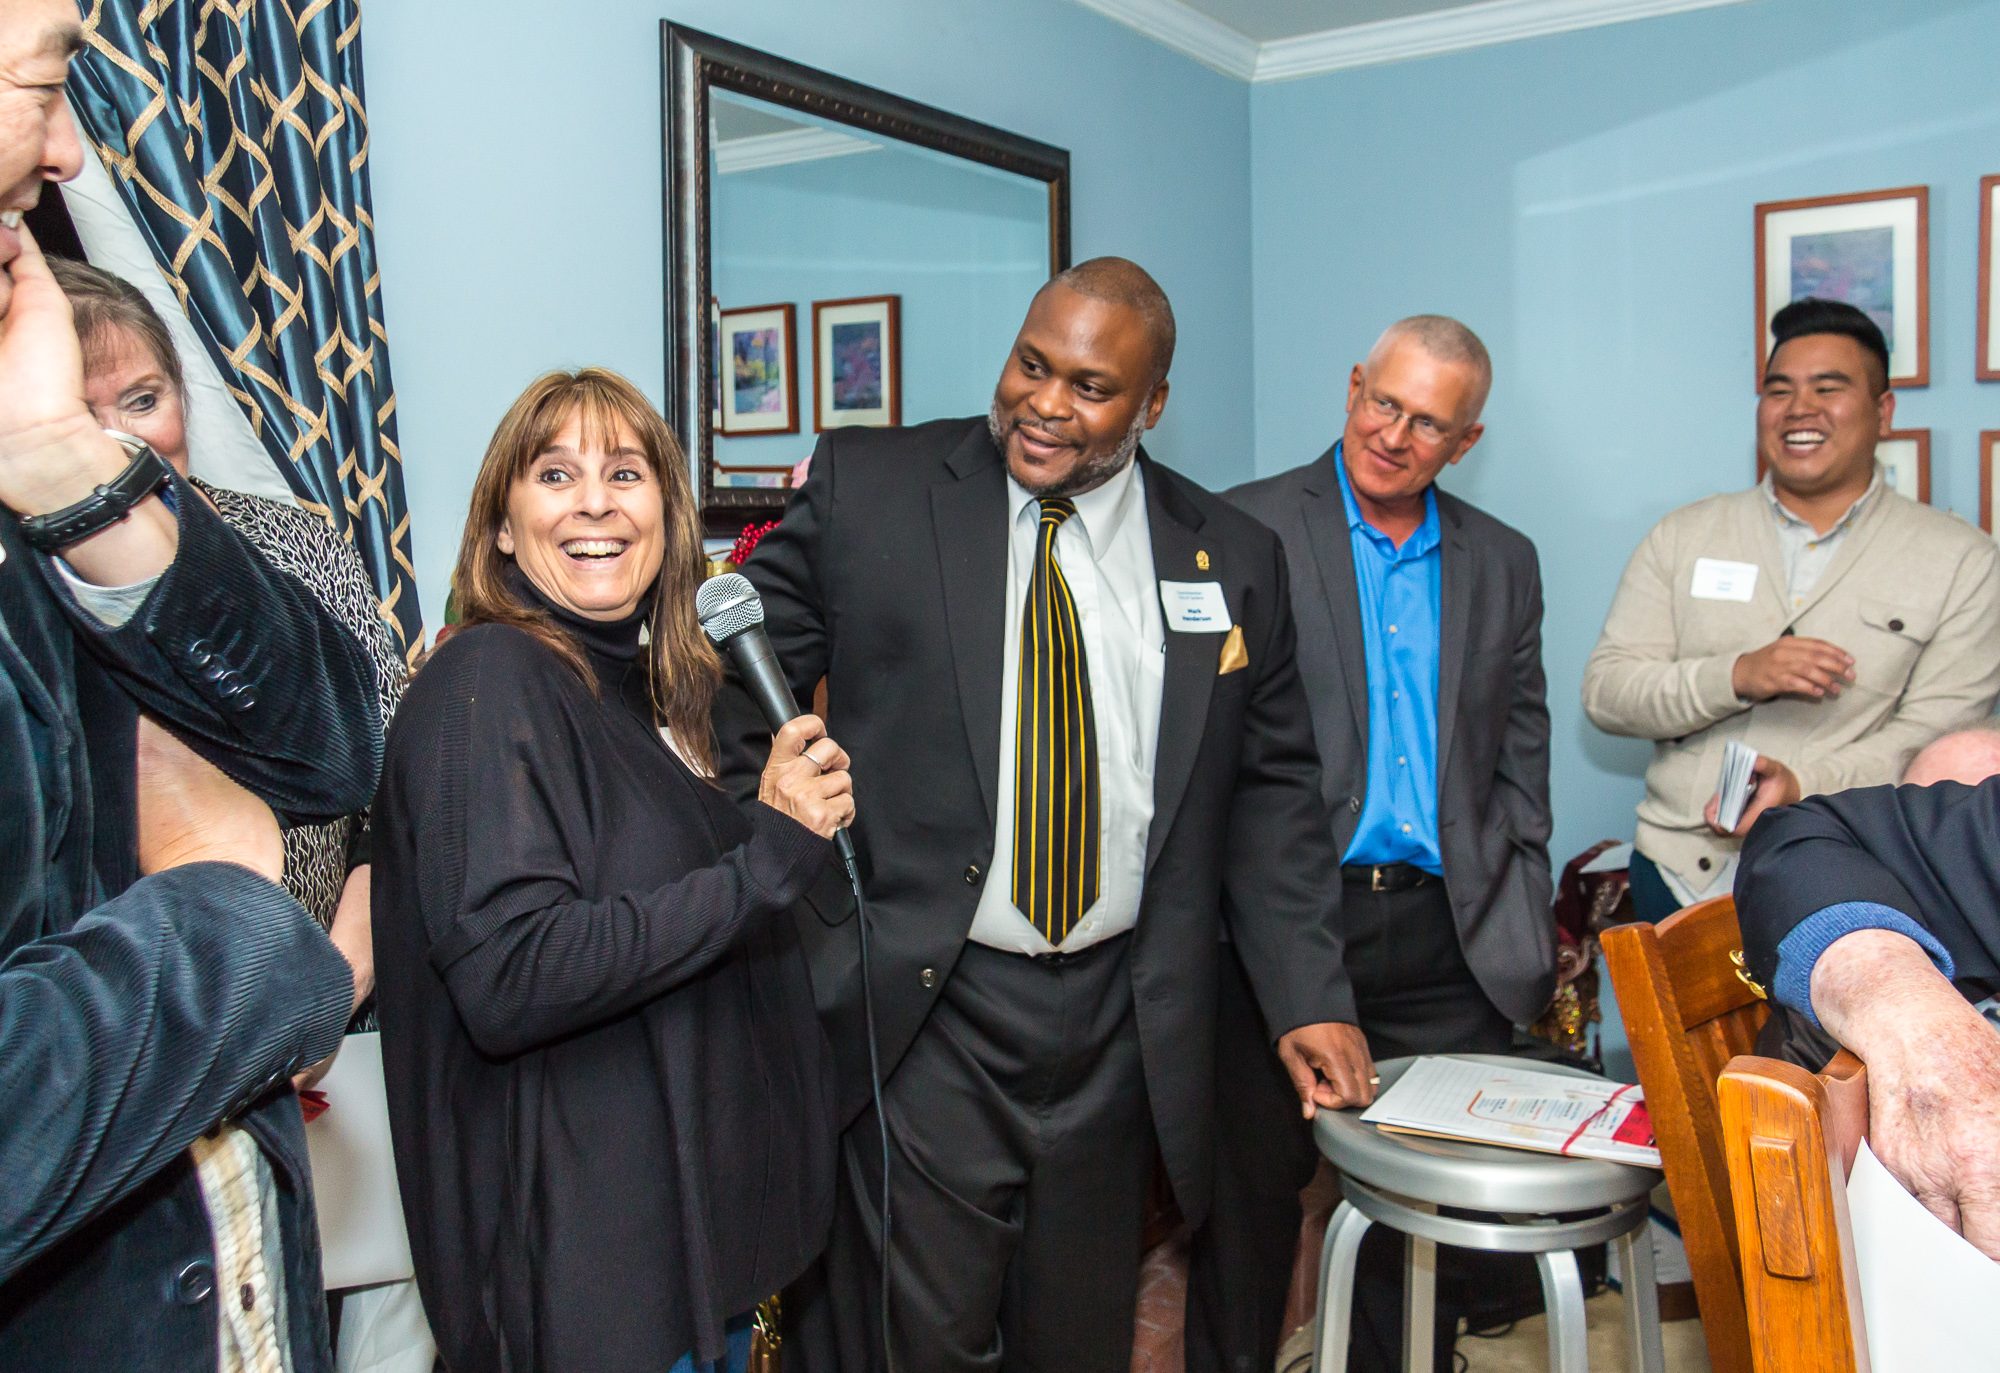 Westchester-Playa Democratic Club Holiday Party 2015 -38.jpg